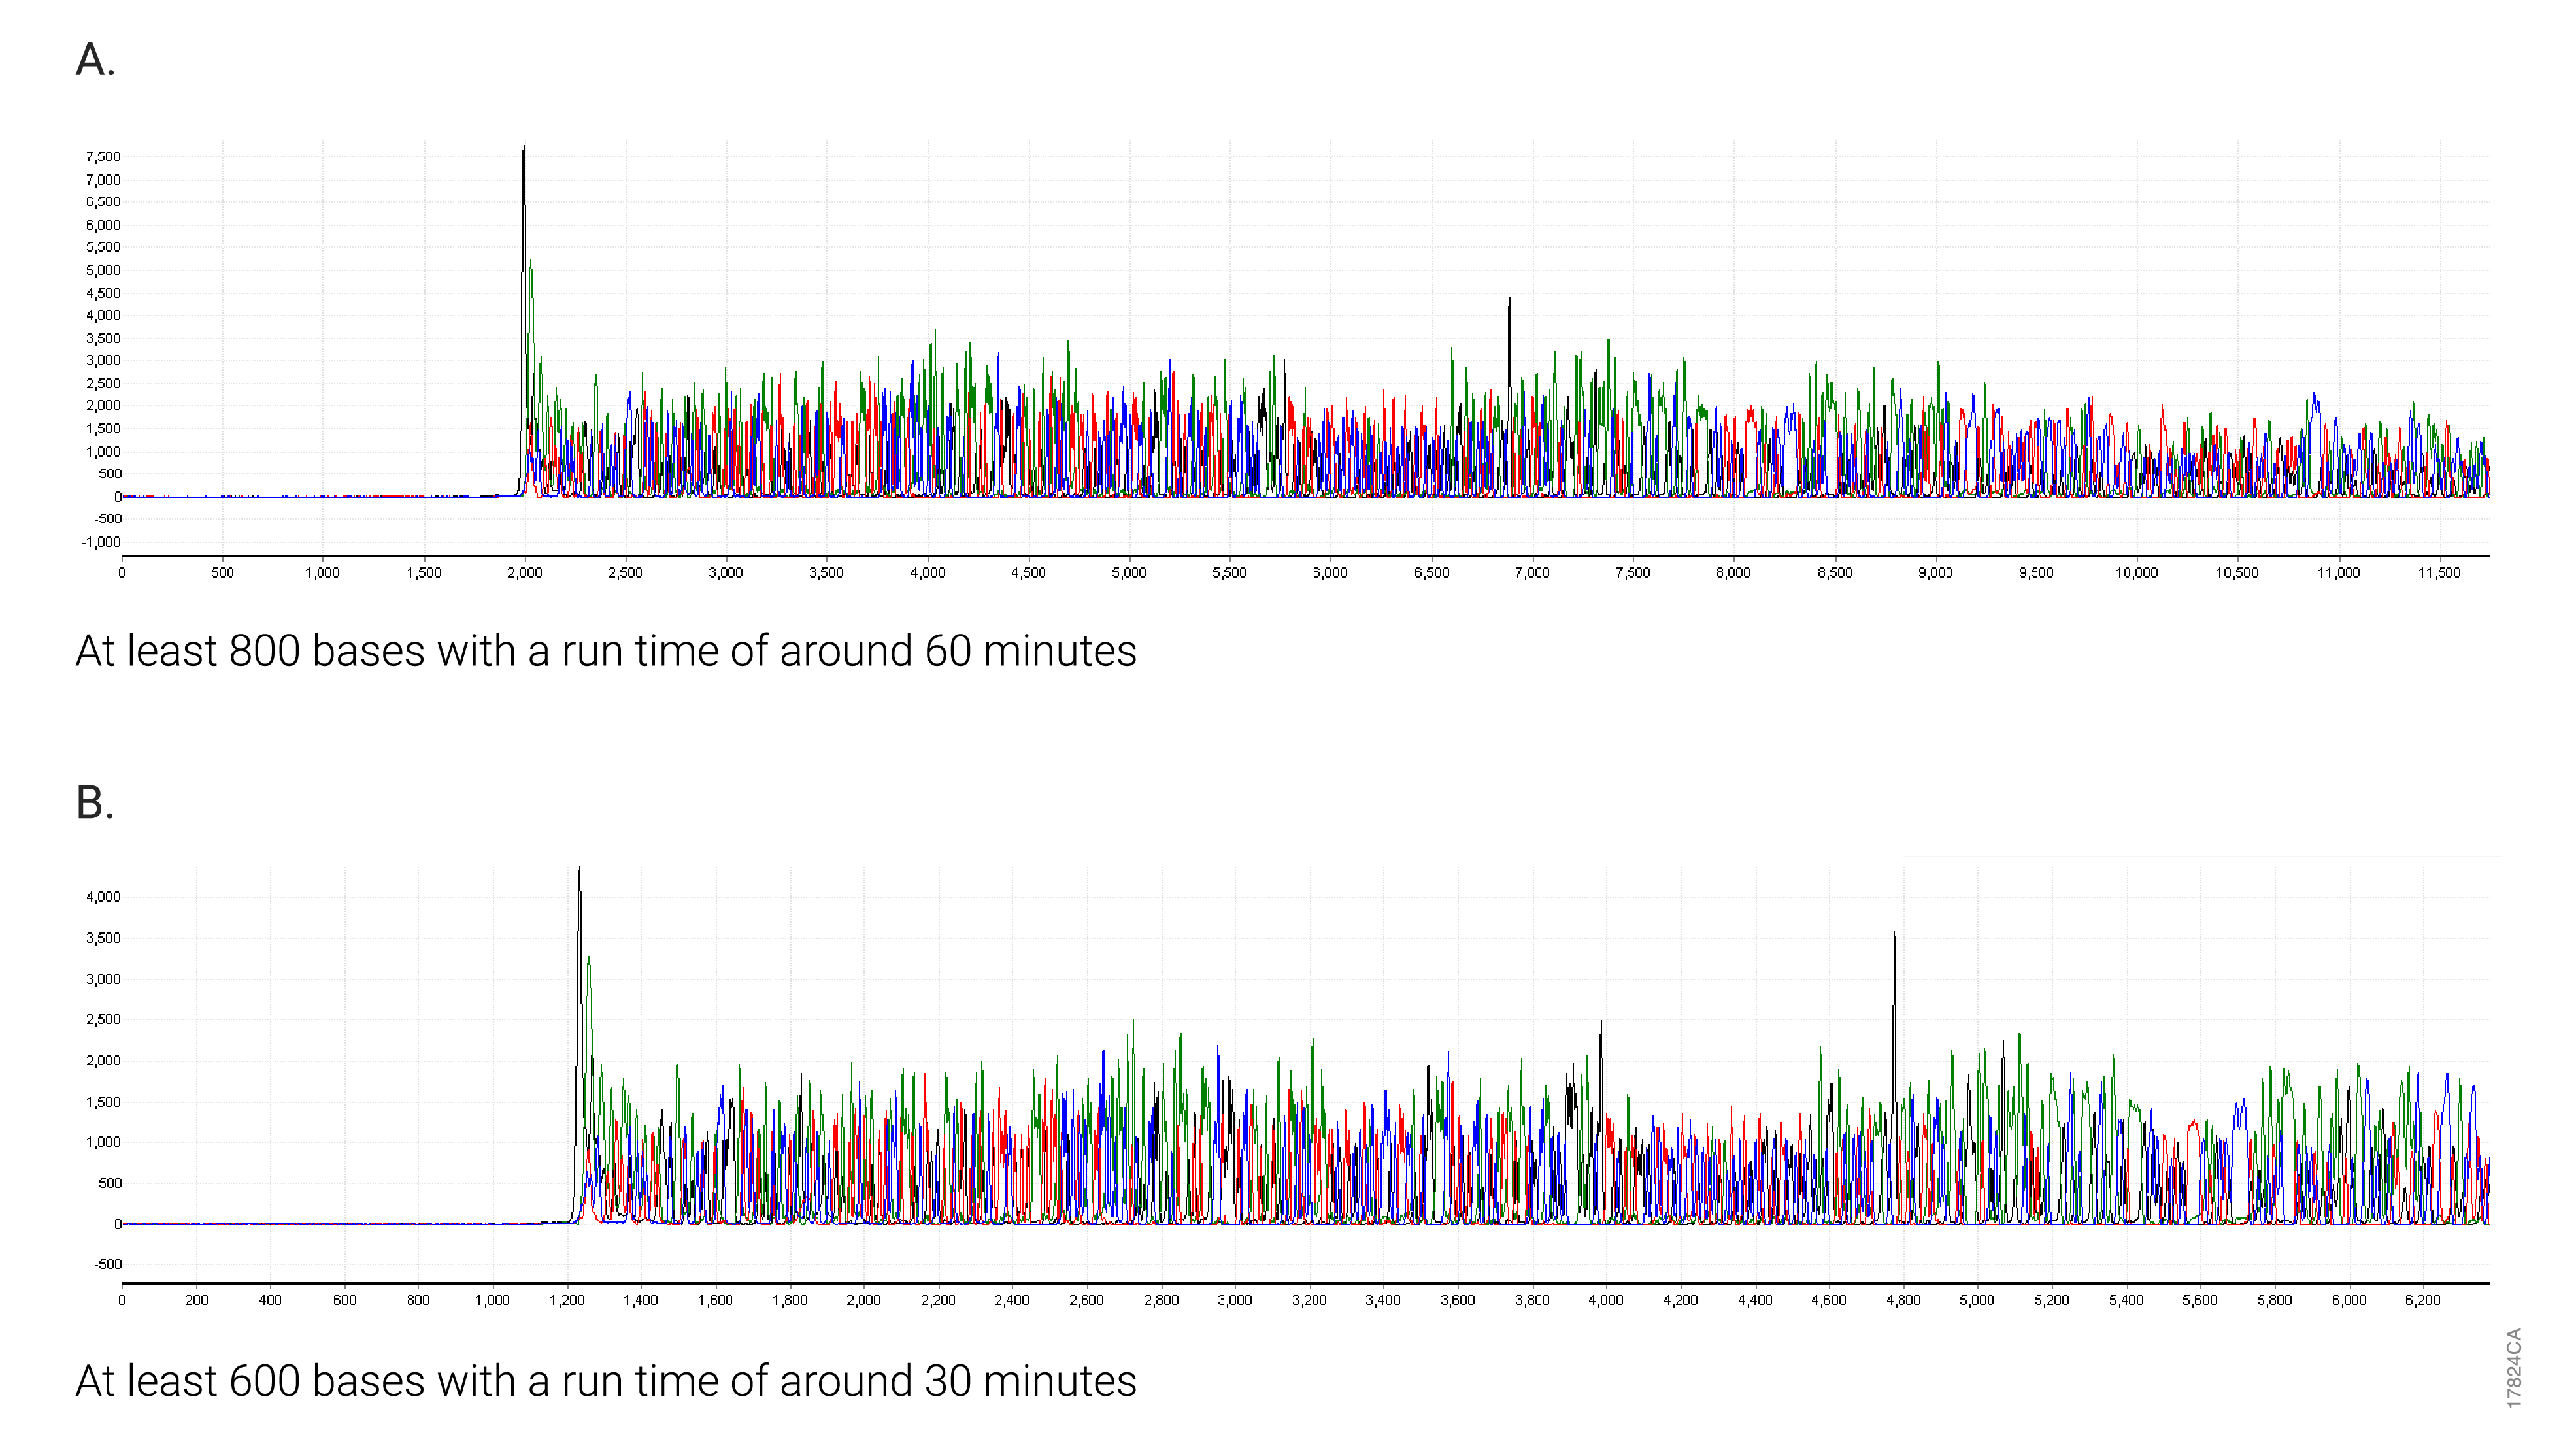 Example data showing sequencing reads of 600 bases and 800 bases.